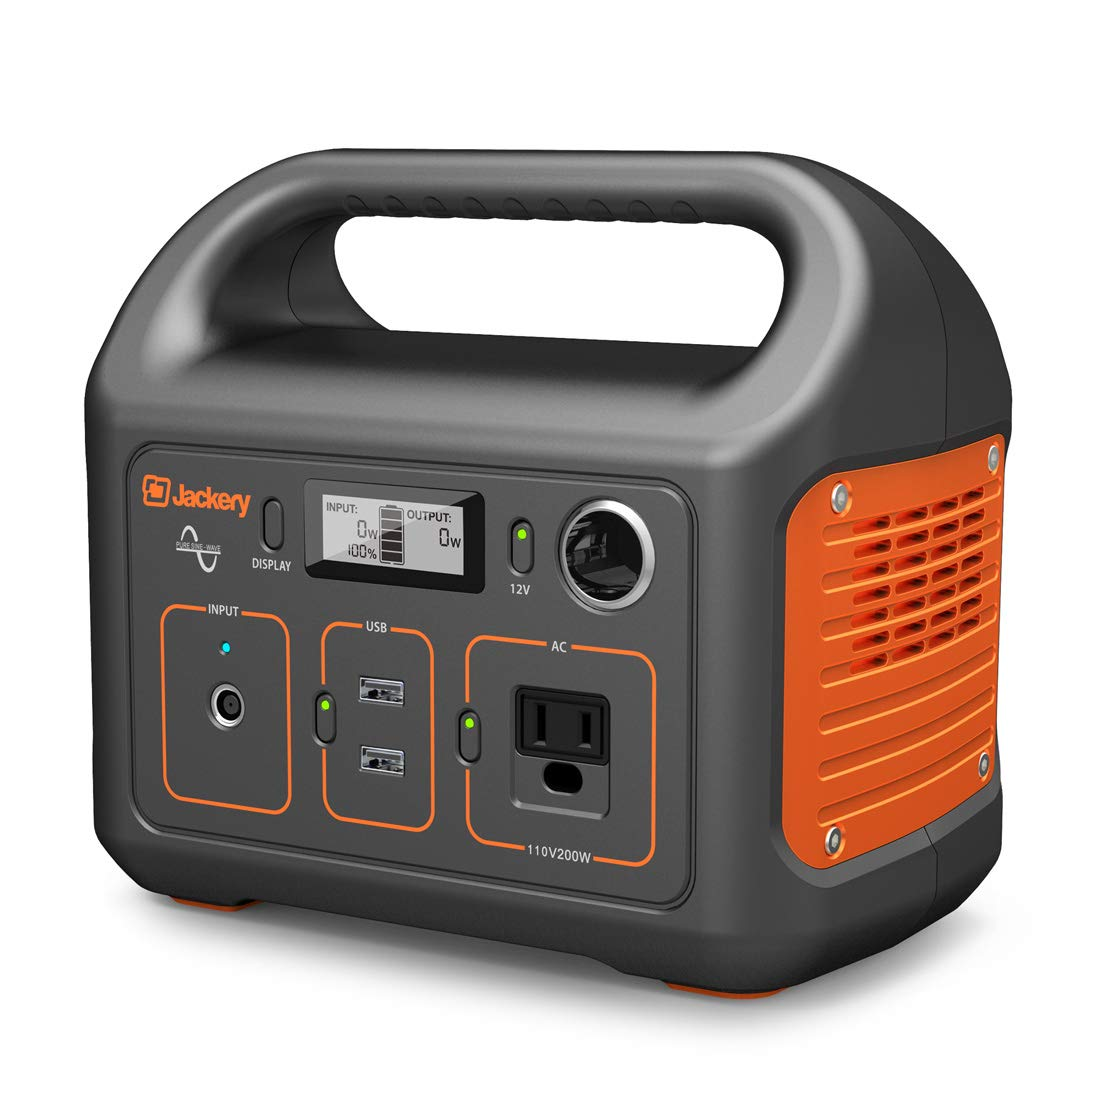 Jackery Portable Power Station Explorer 240, 240Wh Backup Lithium Battery, 110V/200W Pure Sine Wave AC